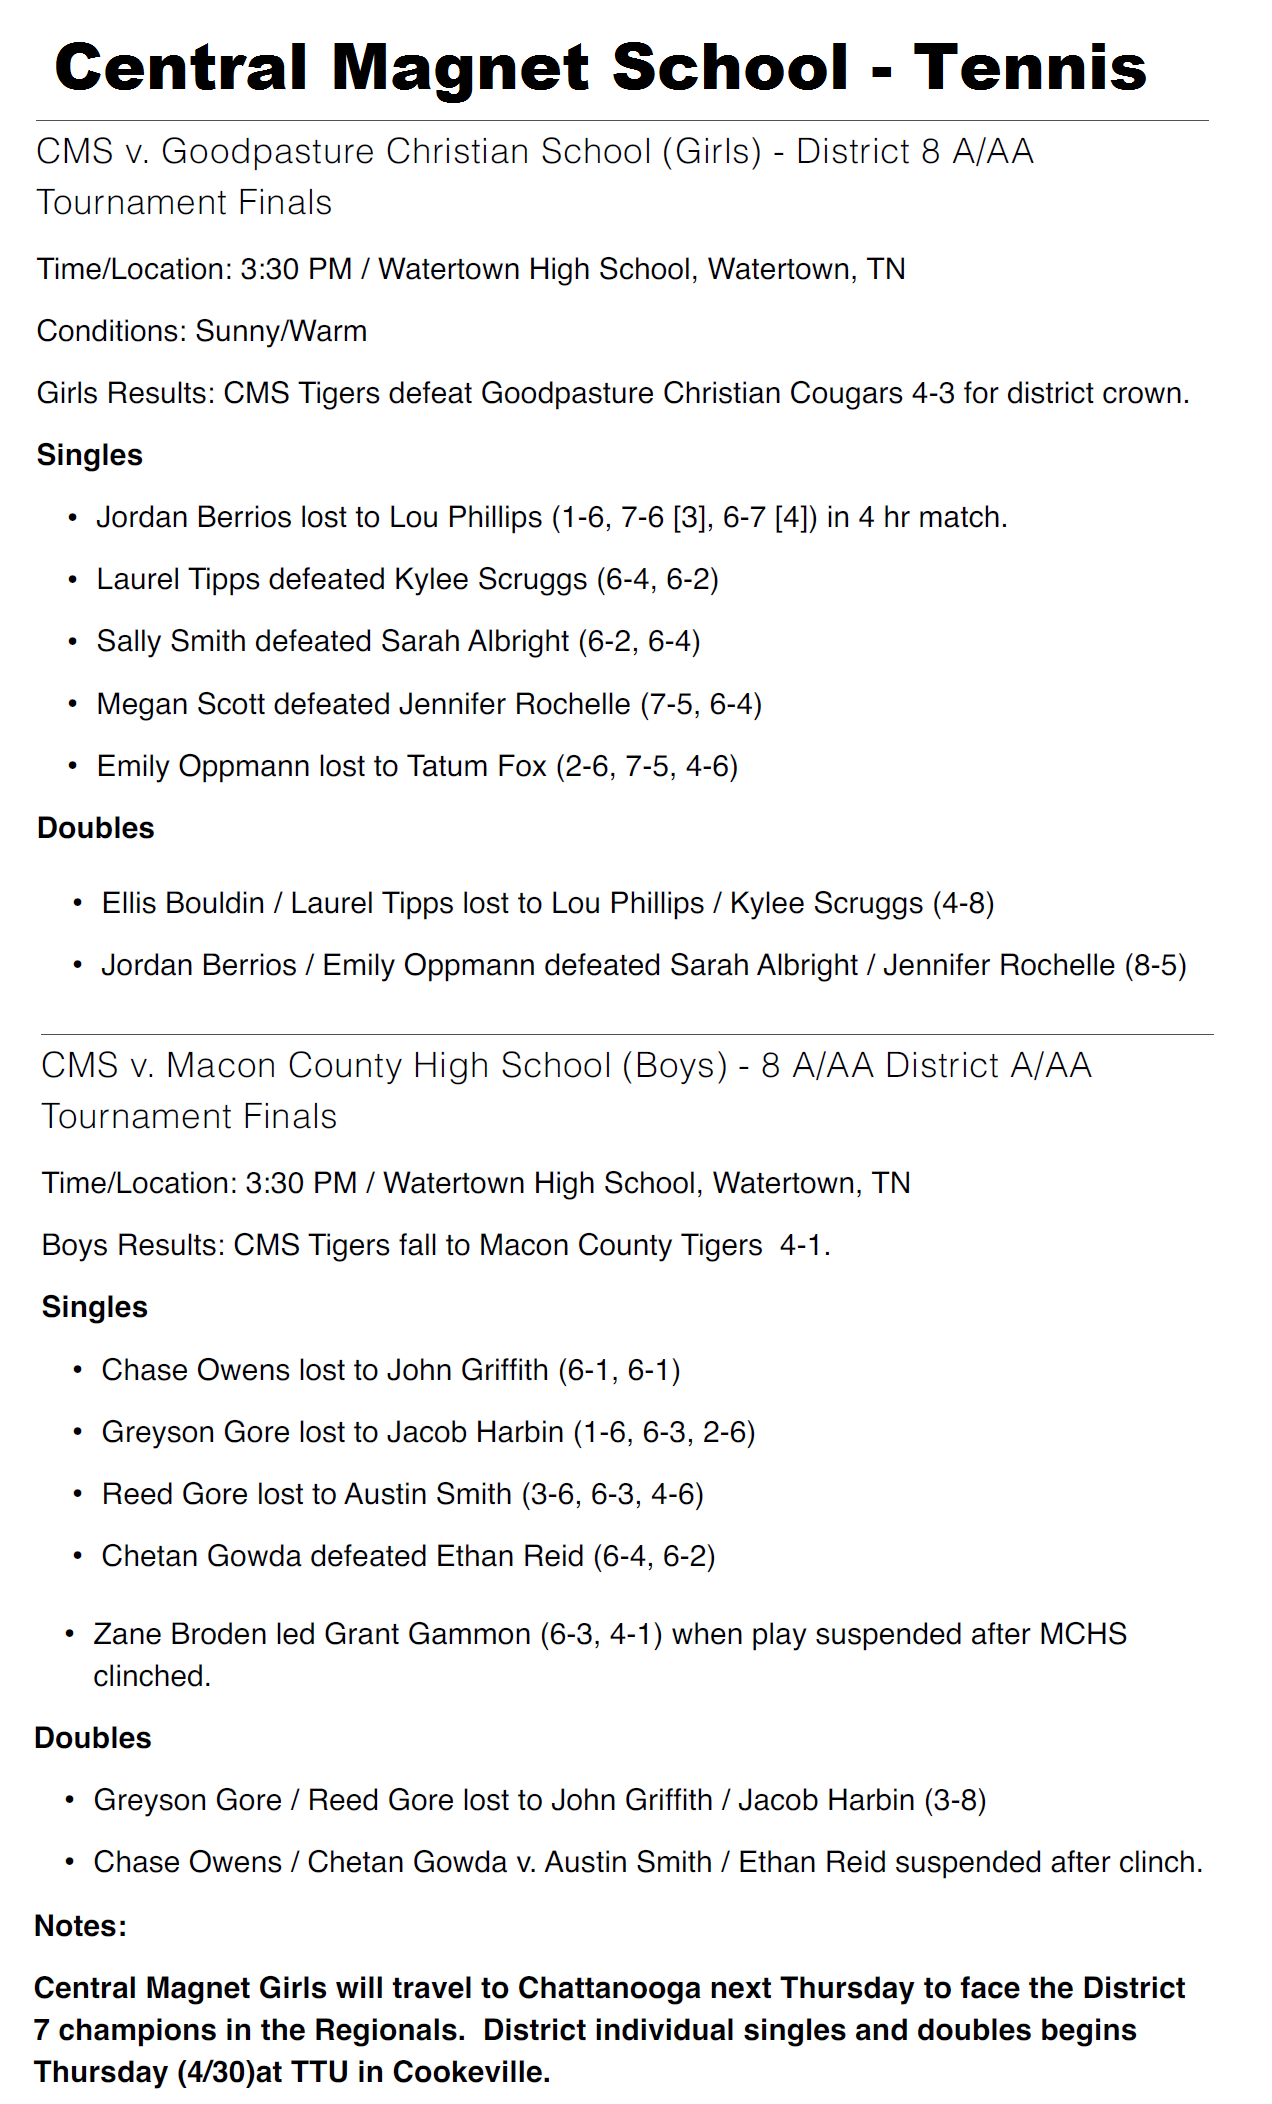 Central Magnet Tennis Scores - Released April 29, 2015